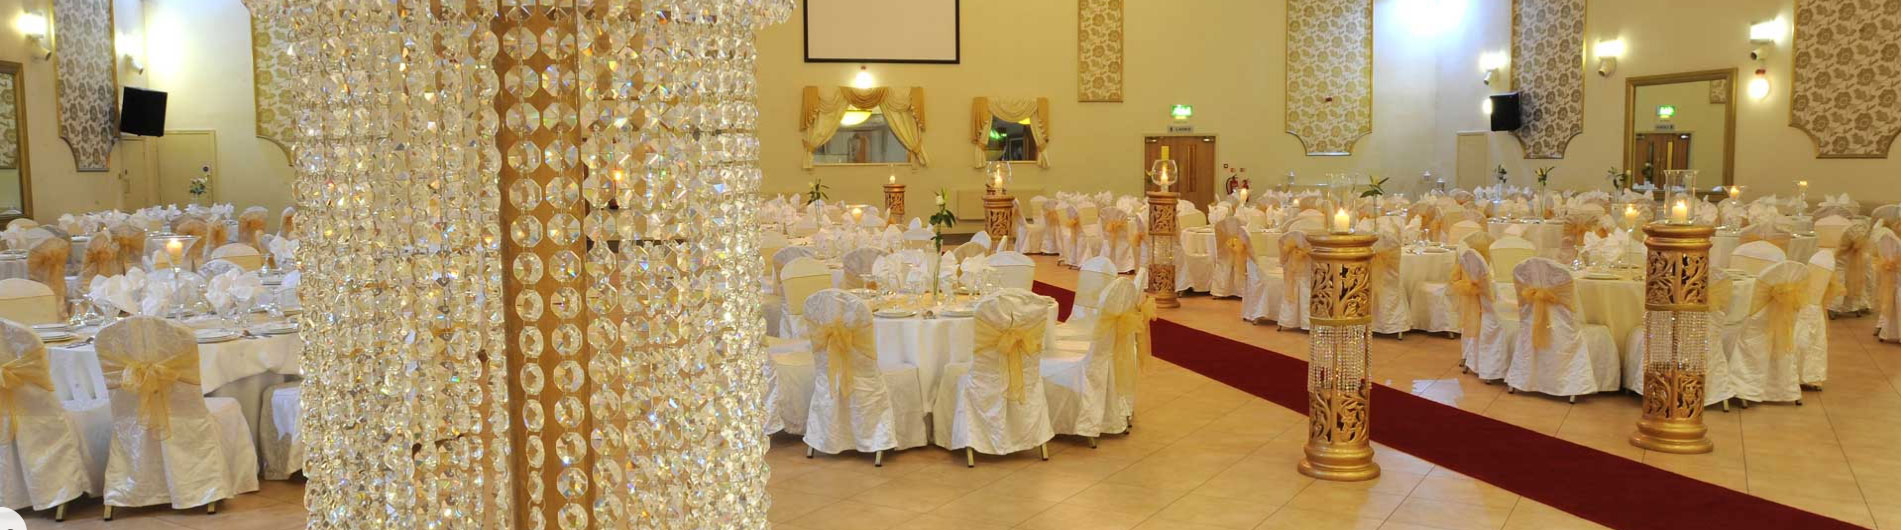 Wedding stage hire 299 backdrop hire 199 throne hire 199 category junglespirit